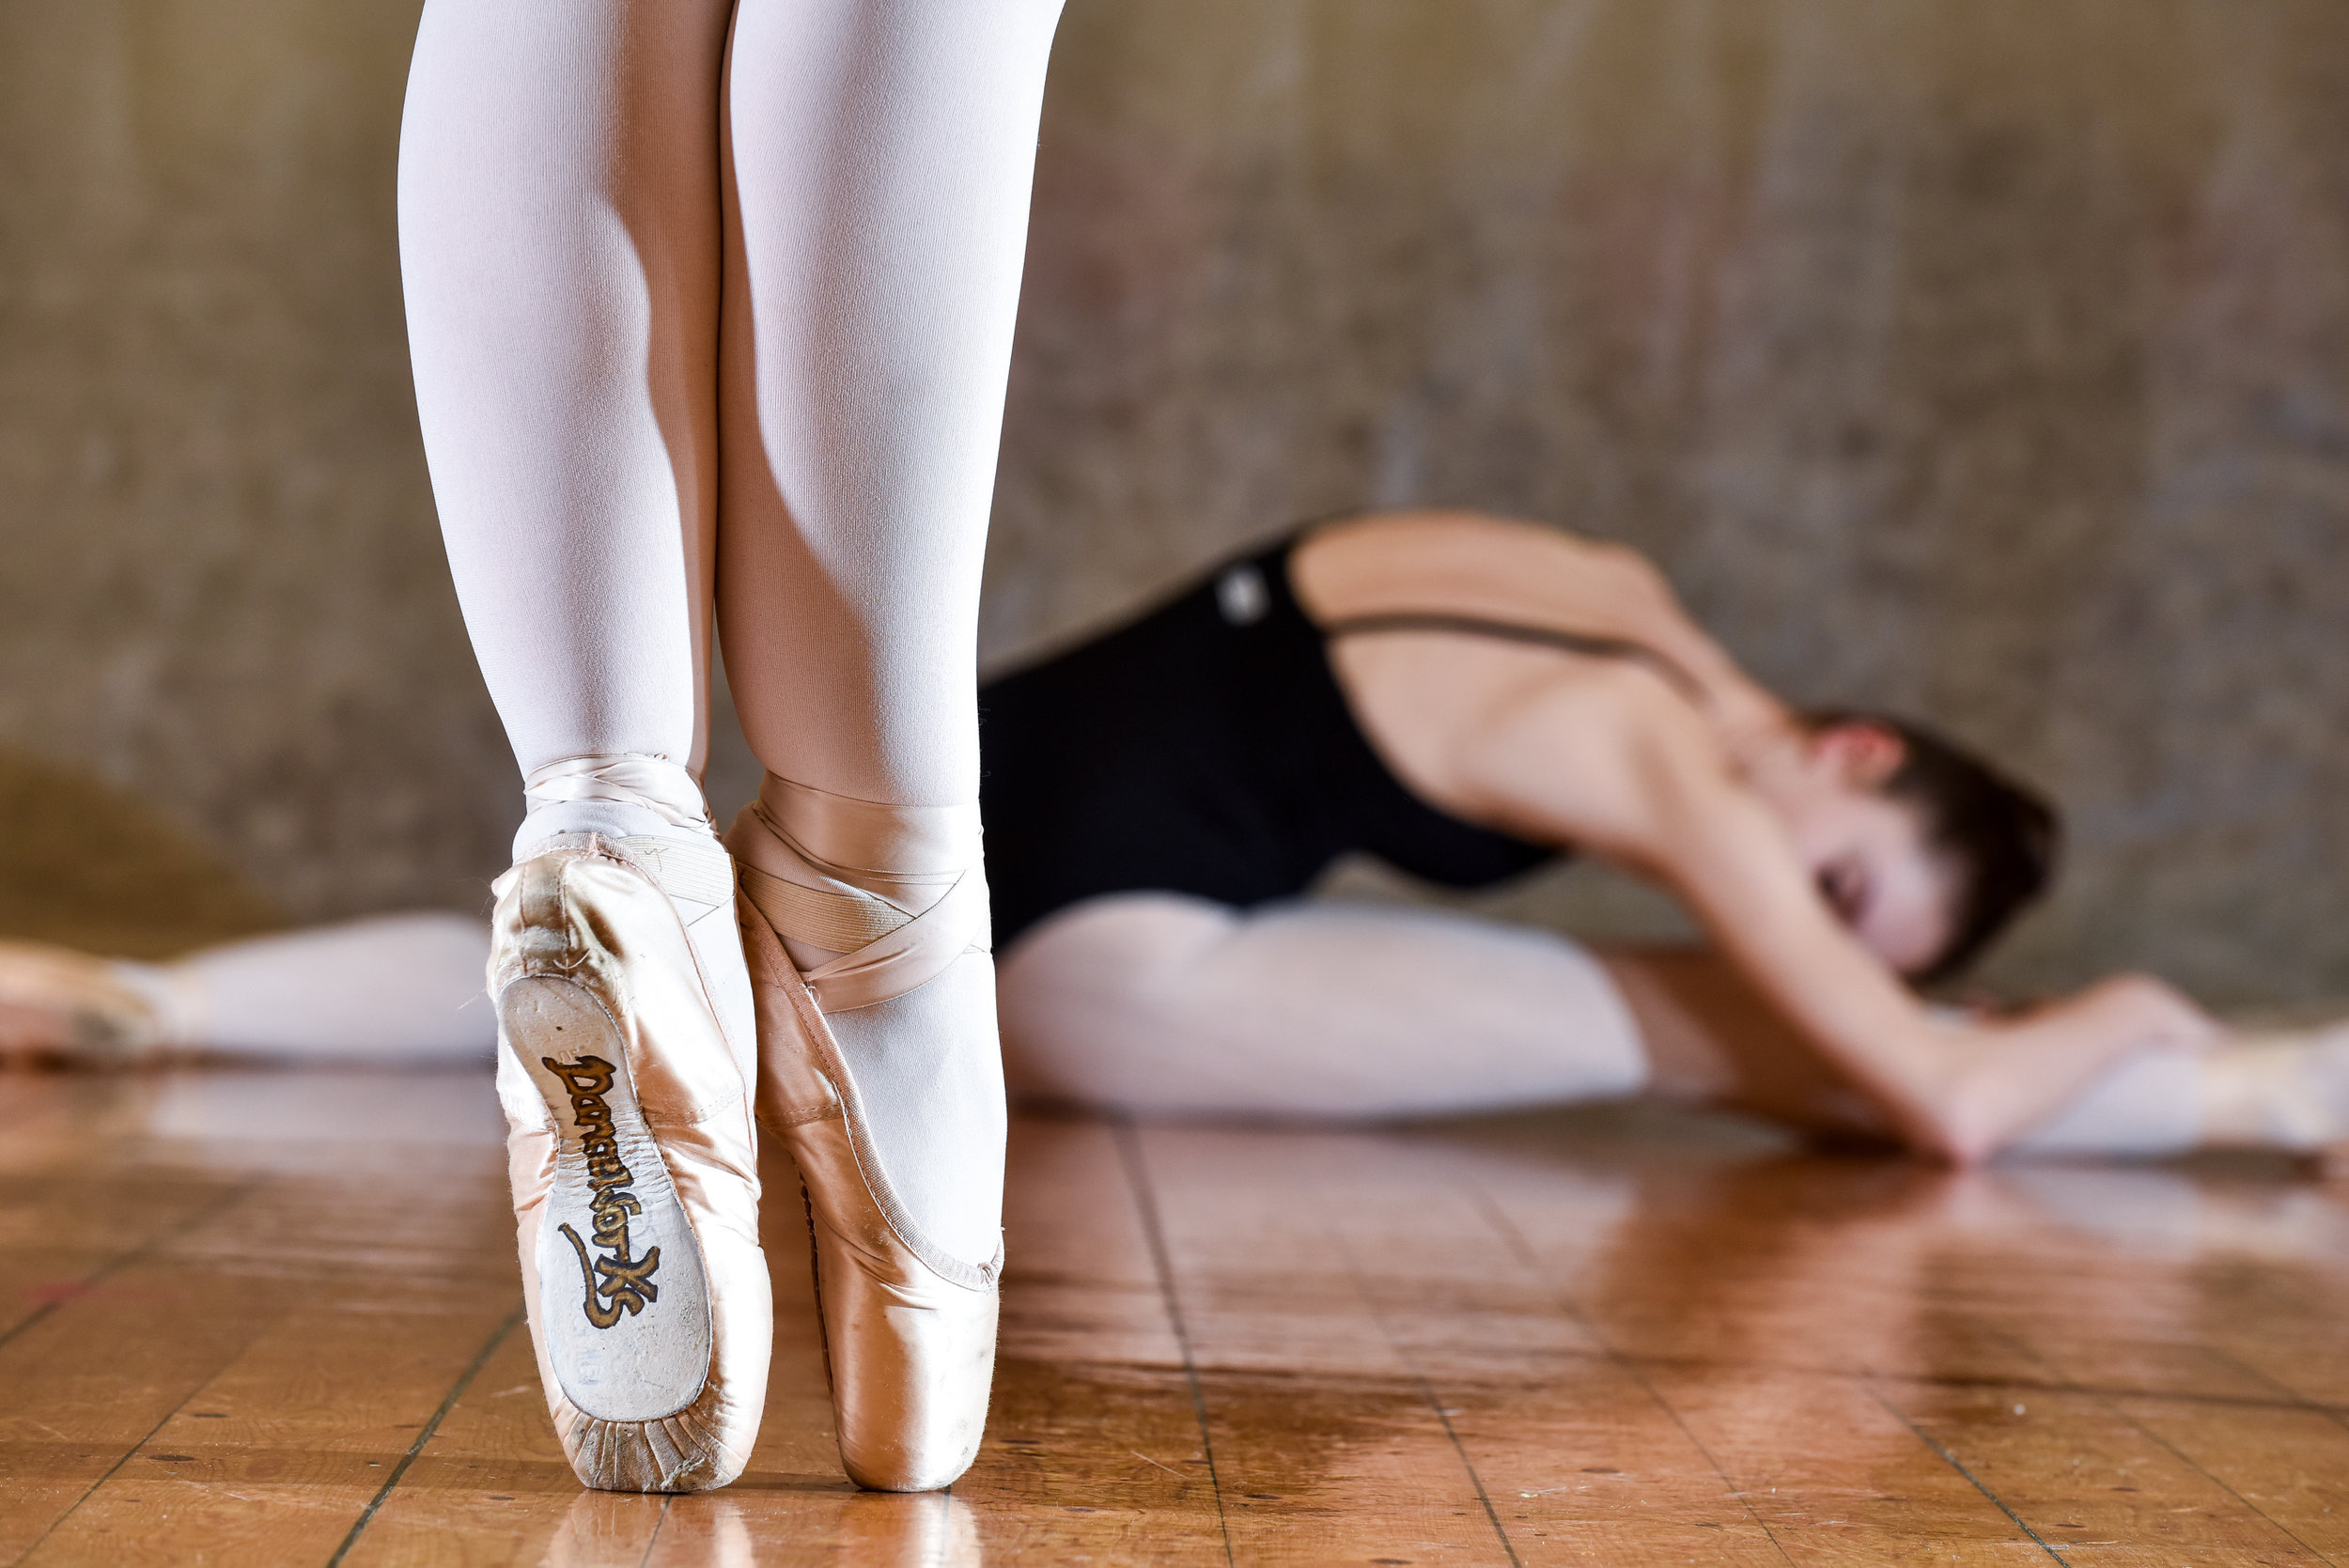 danceworks pointe shoe and lucy.jpg